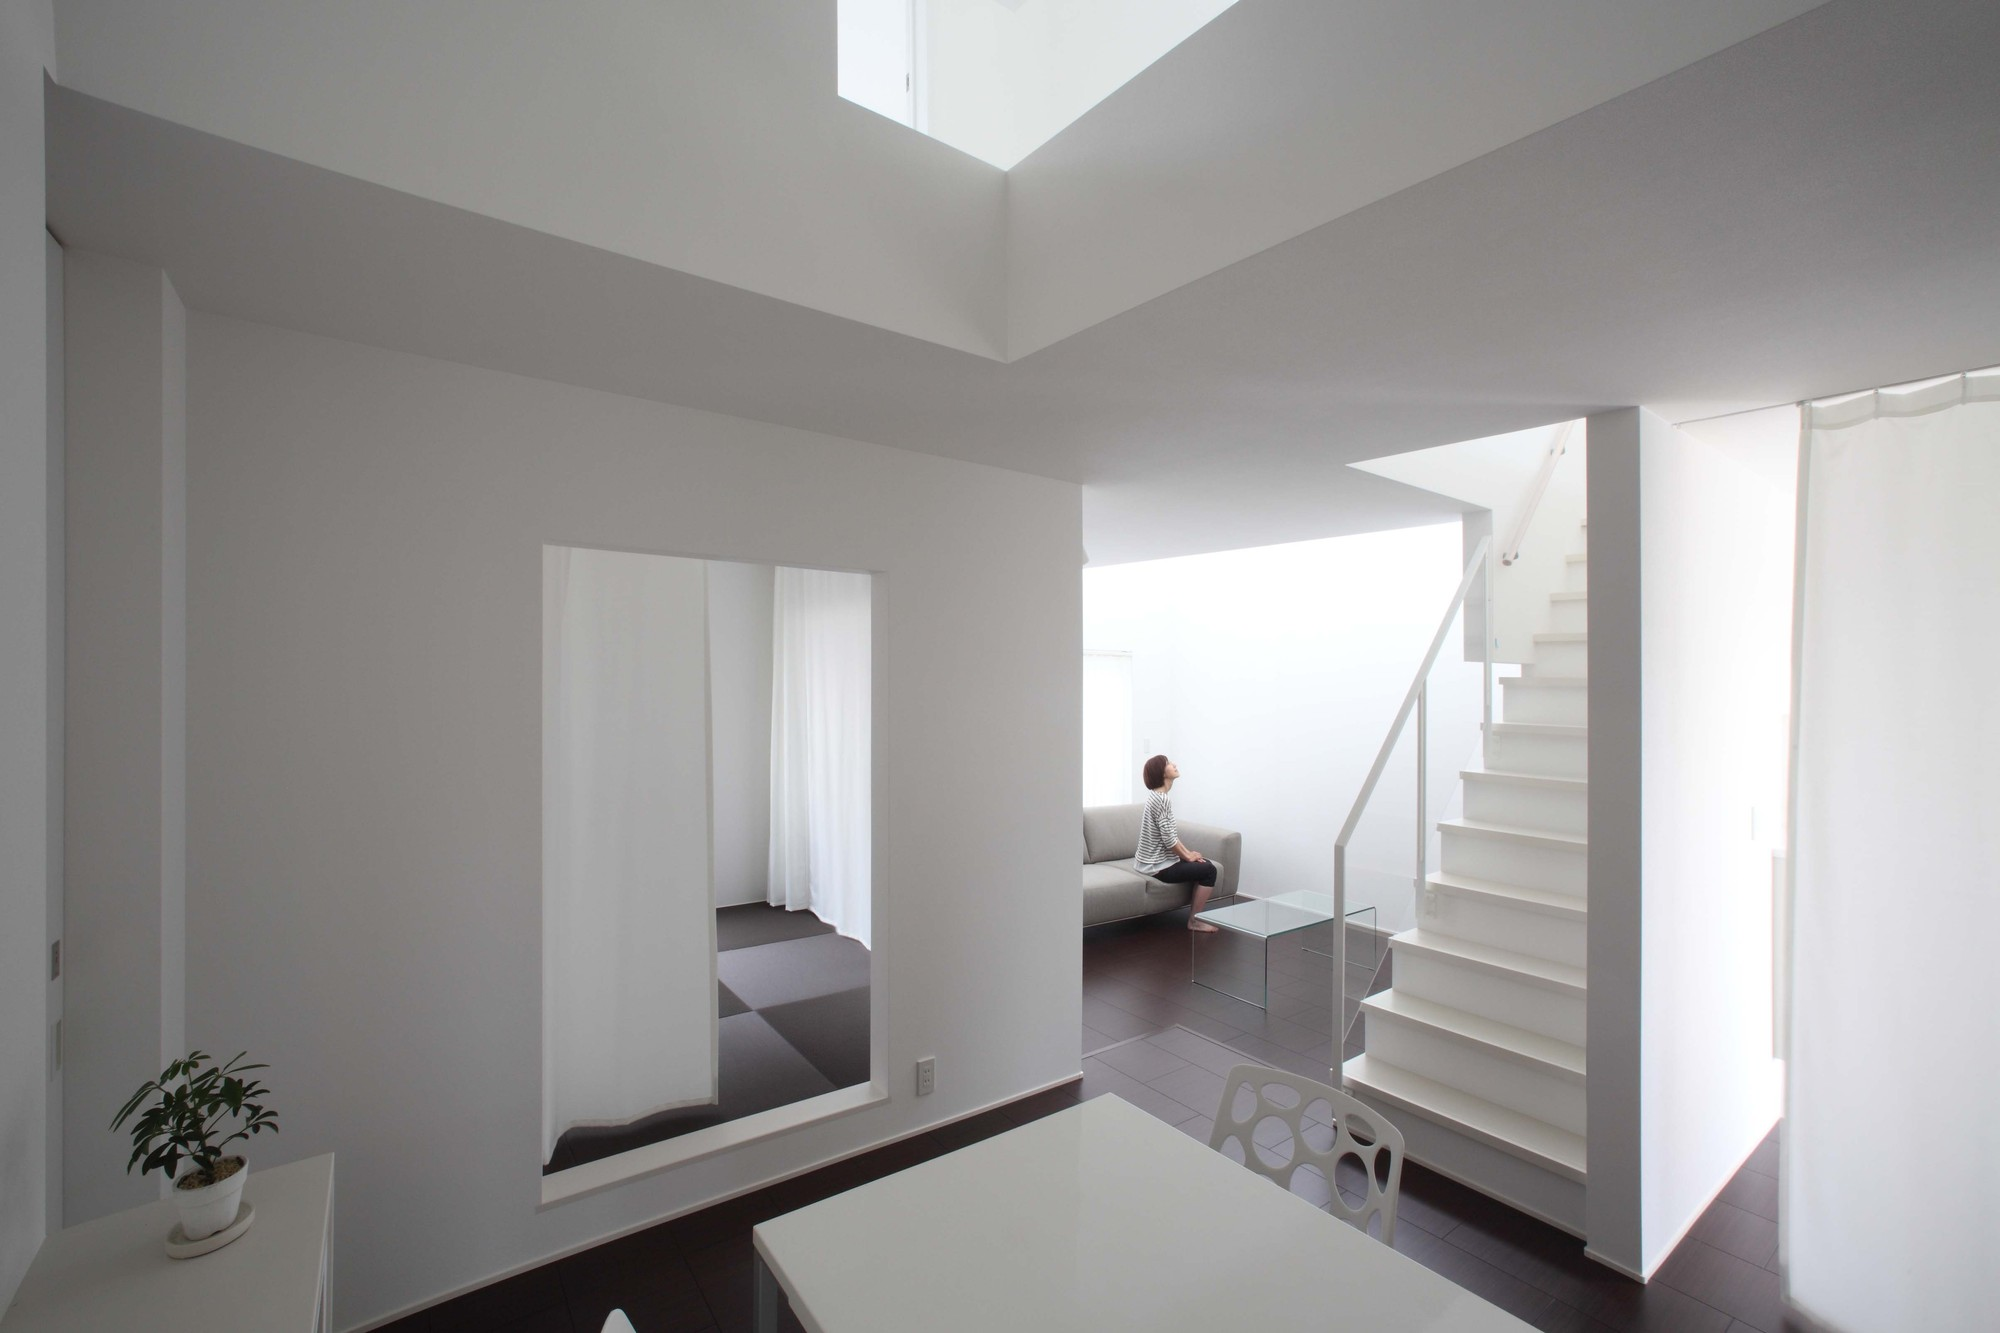 Omihachiman House / ALTS Design Office, Courtesy of ALTS Design Office